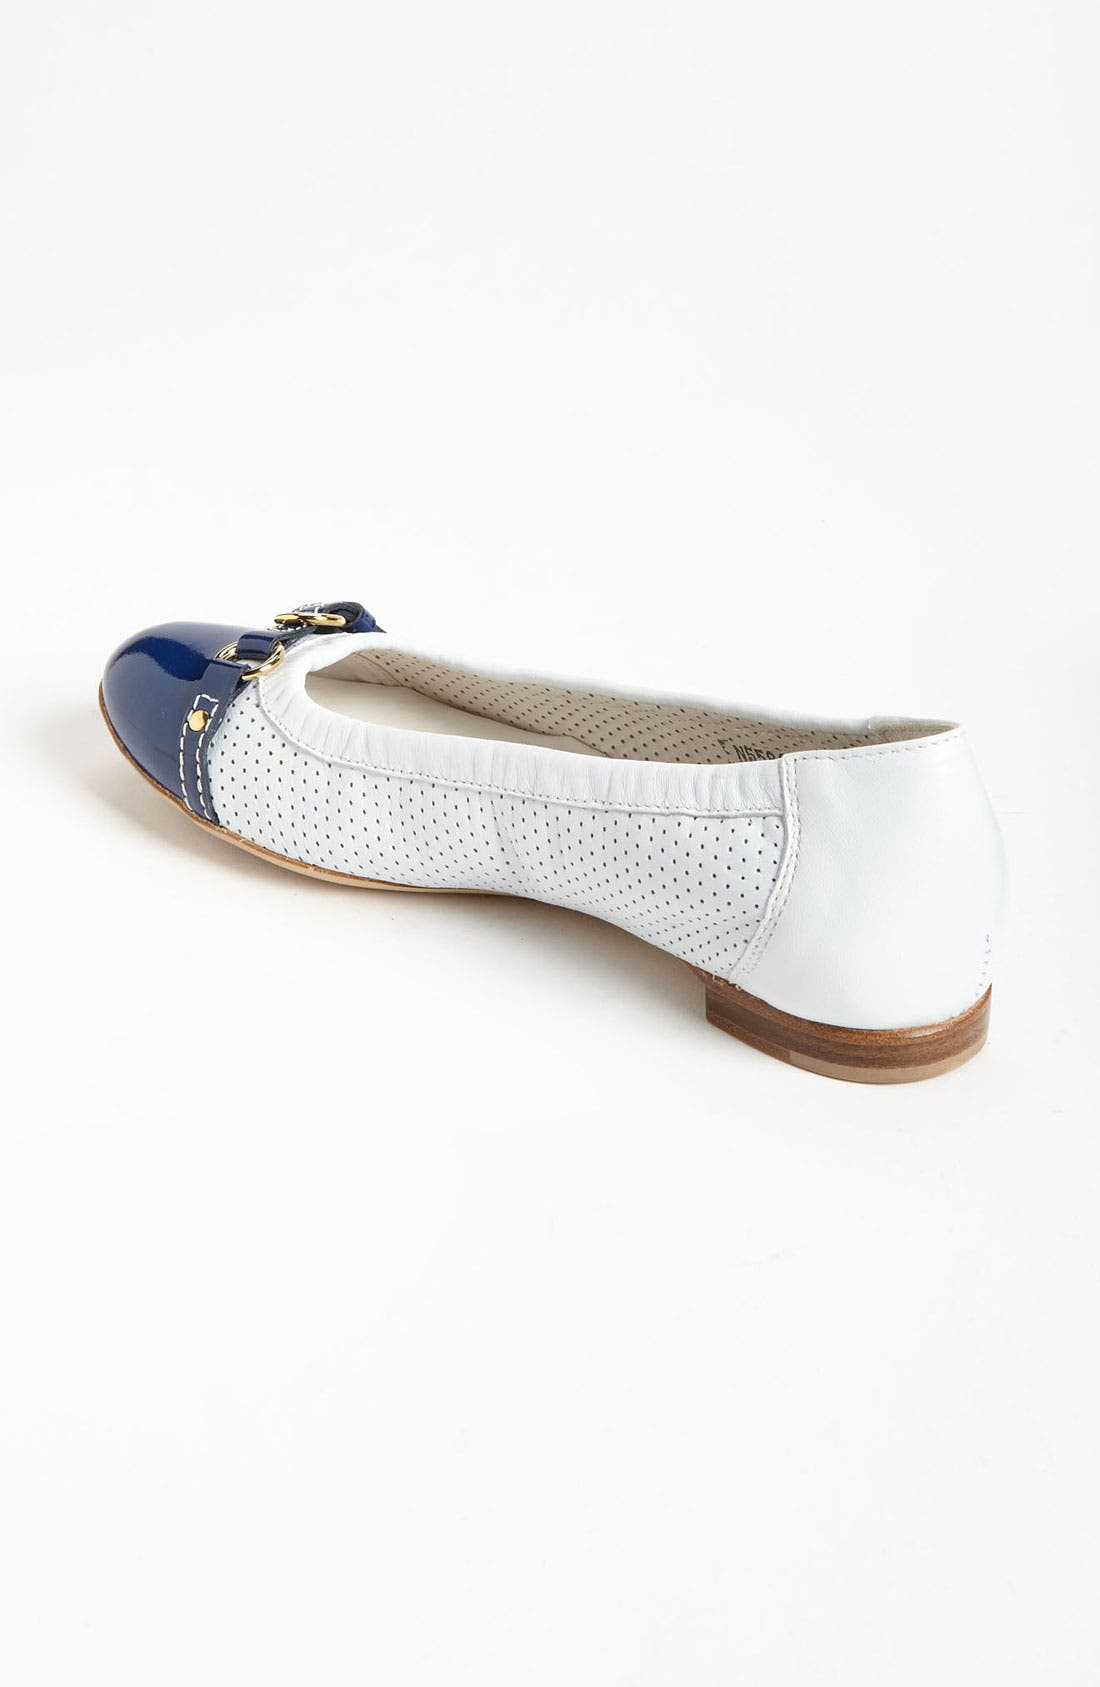 Alternate Image 2  - Attilio Giusti Leombruni Perforated Toe Cap Ballet Flat